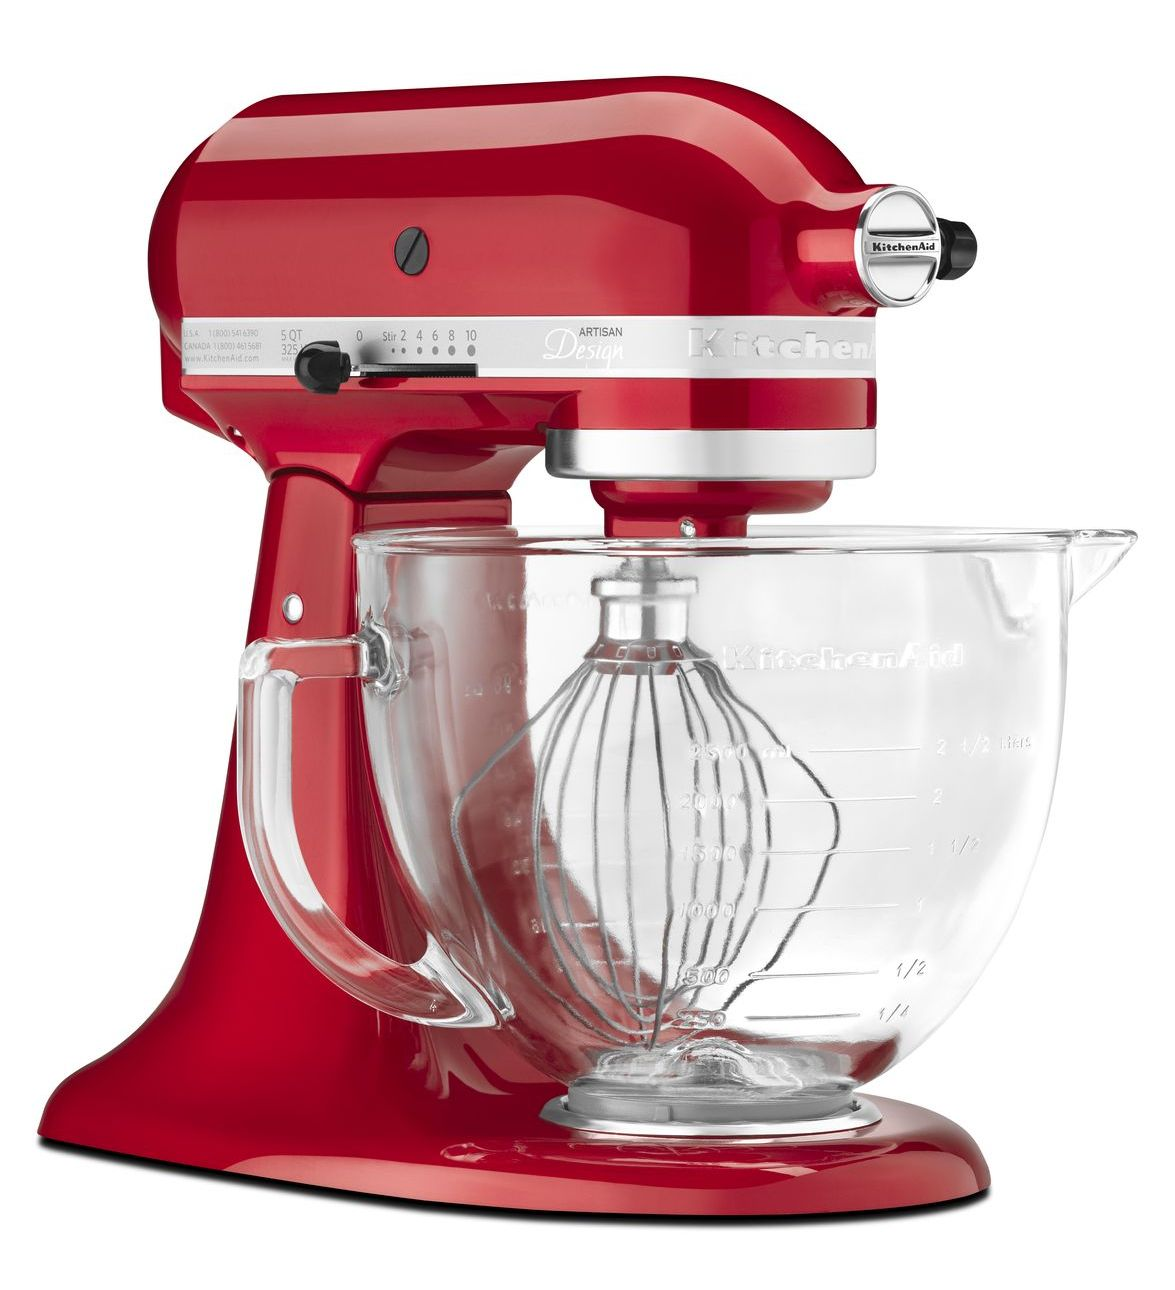 KitchenAid KSM155GB Artisan Series Tilt-Head Stand Mixer, 5-Qt., Candy Apple Red